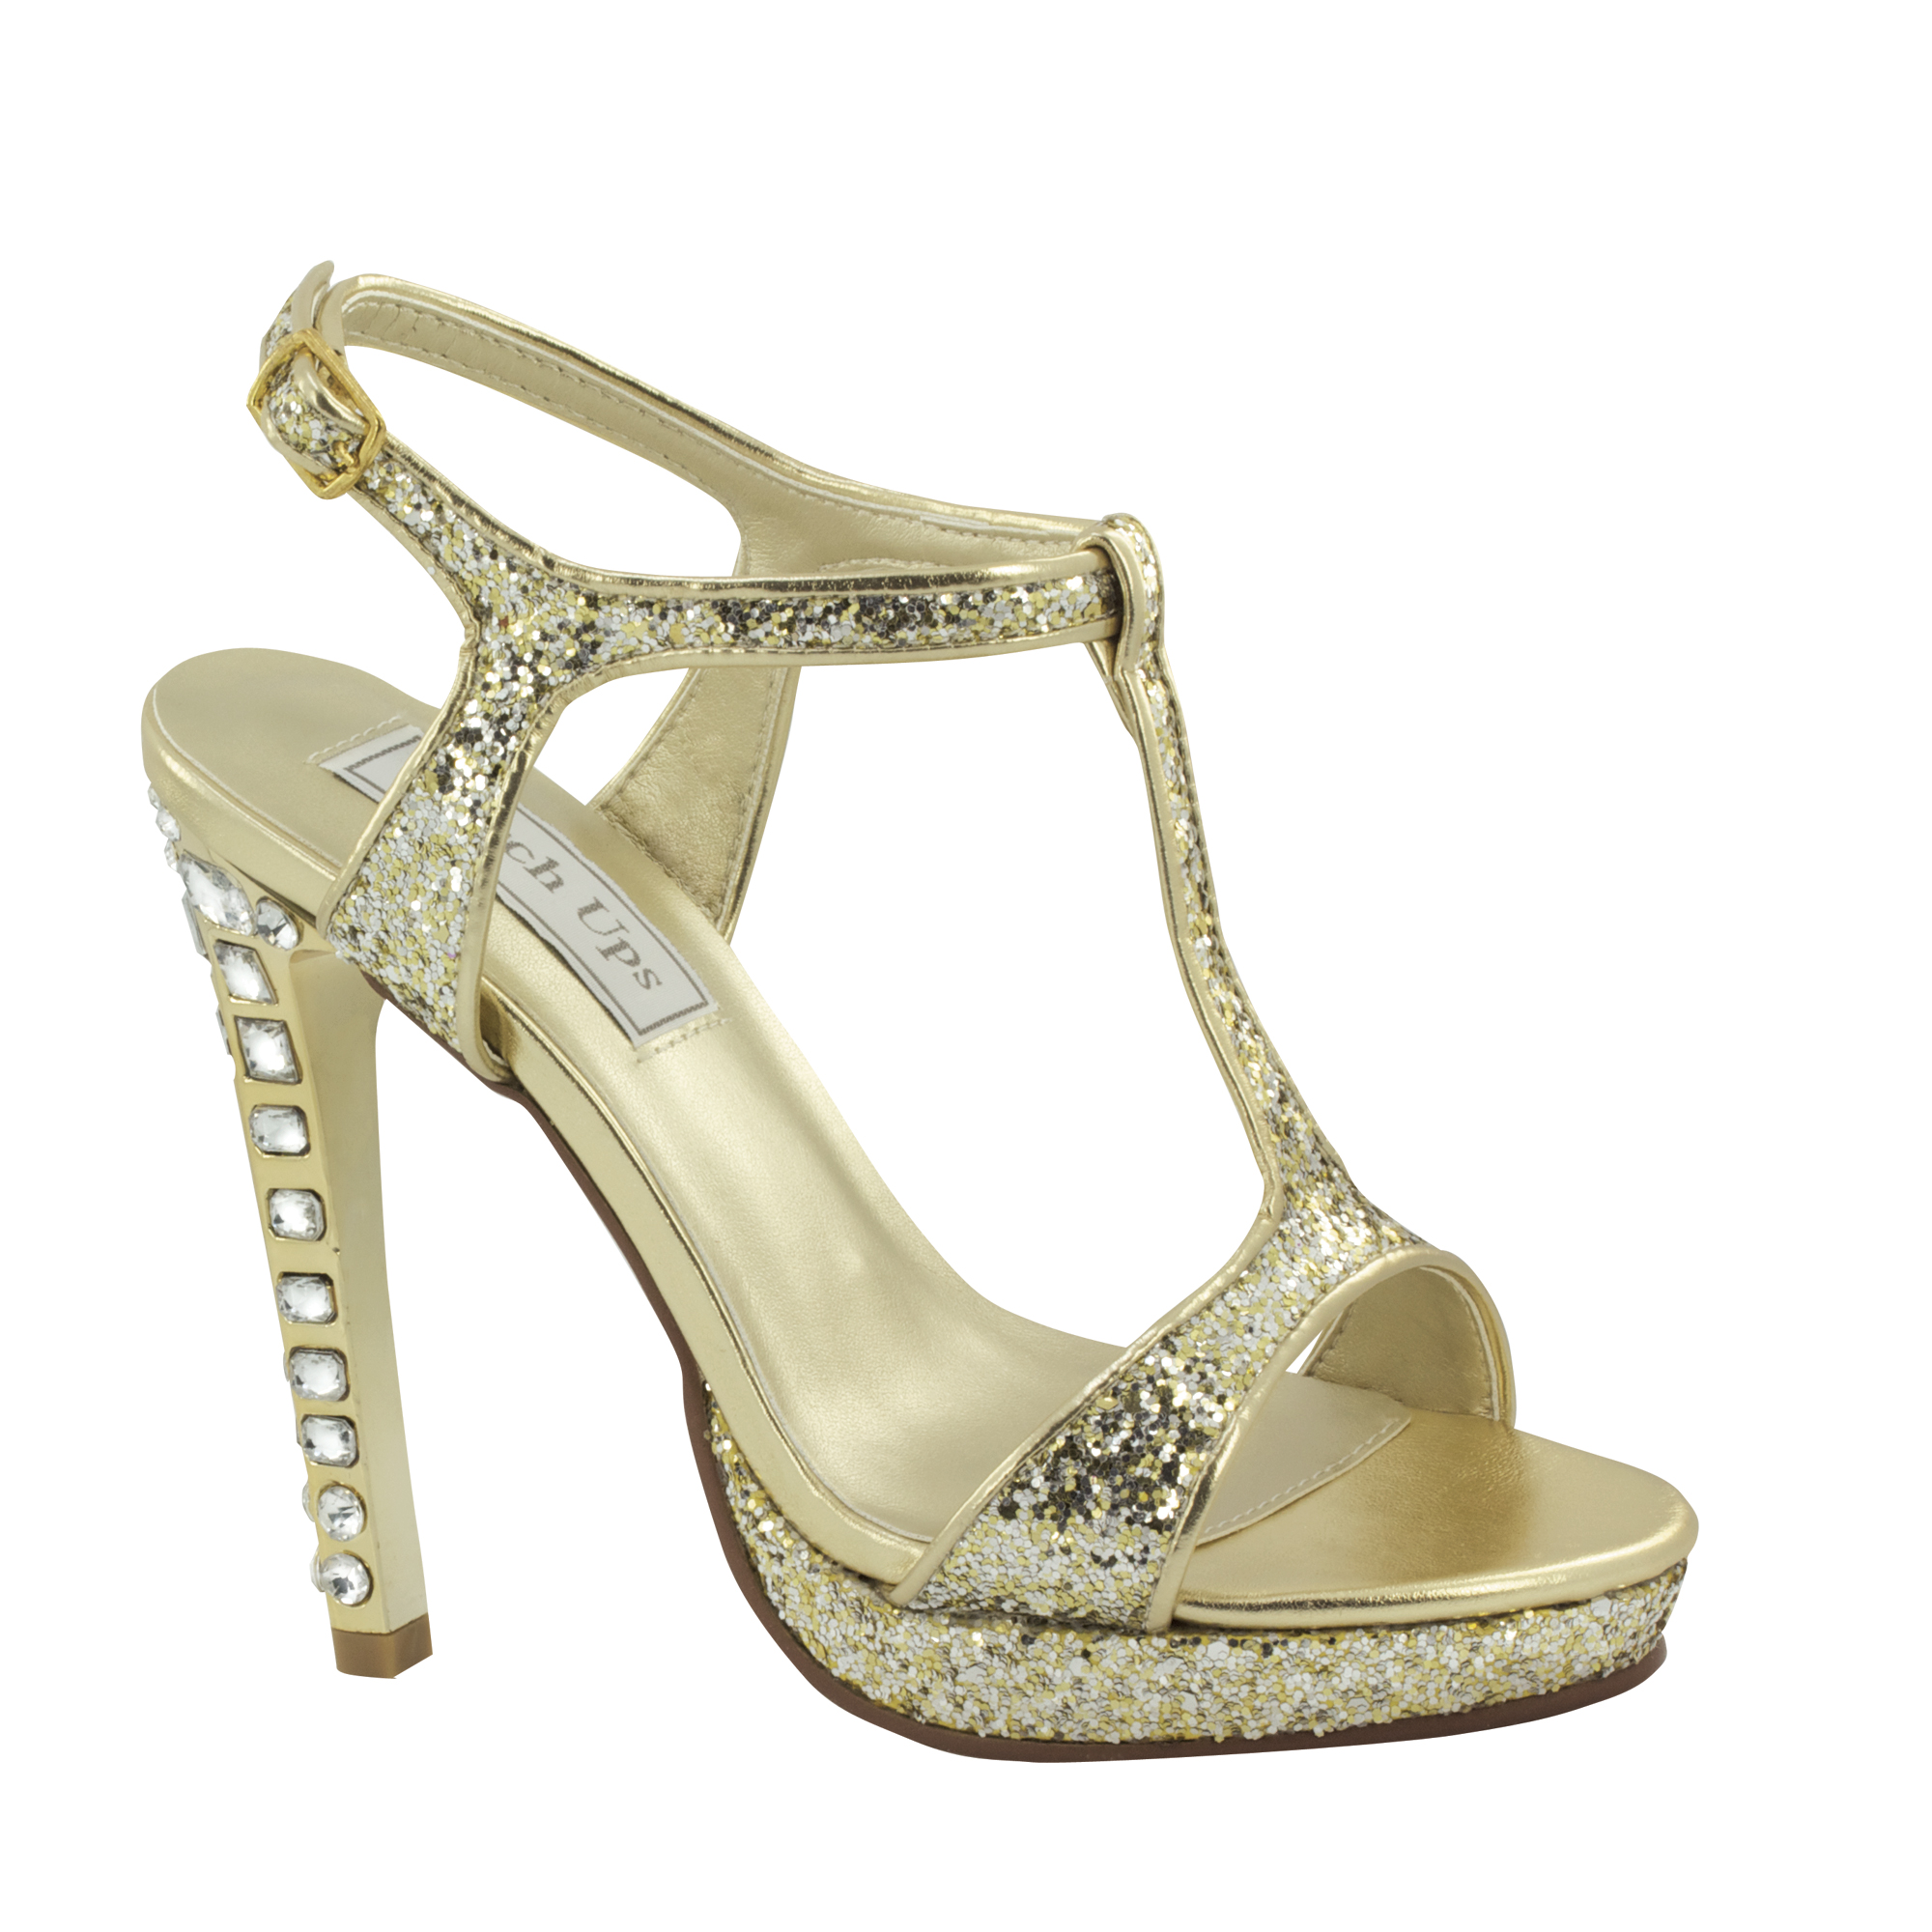 Touch Ups Womens Darcy Platform Sandal,Gold Glitter,7 M US